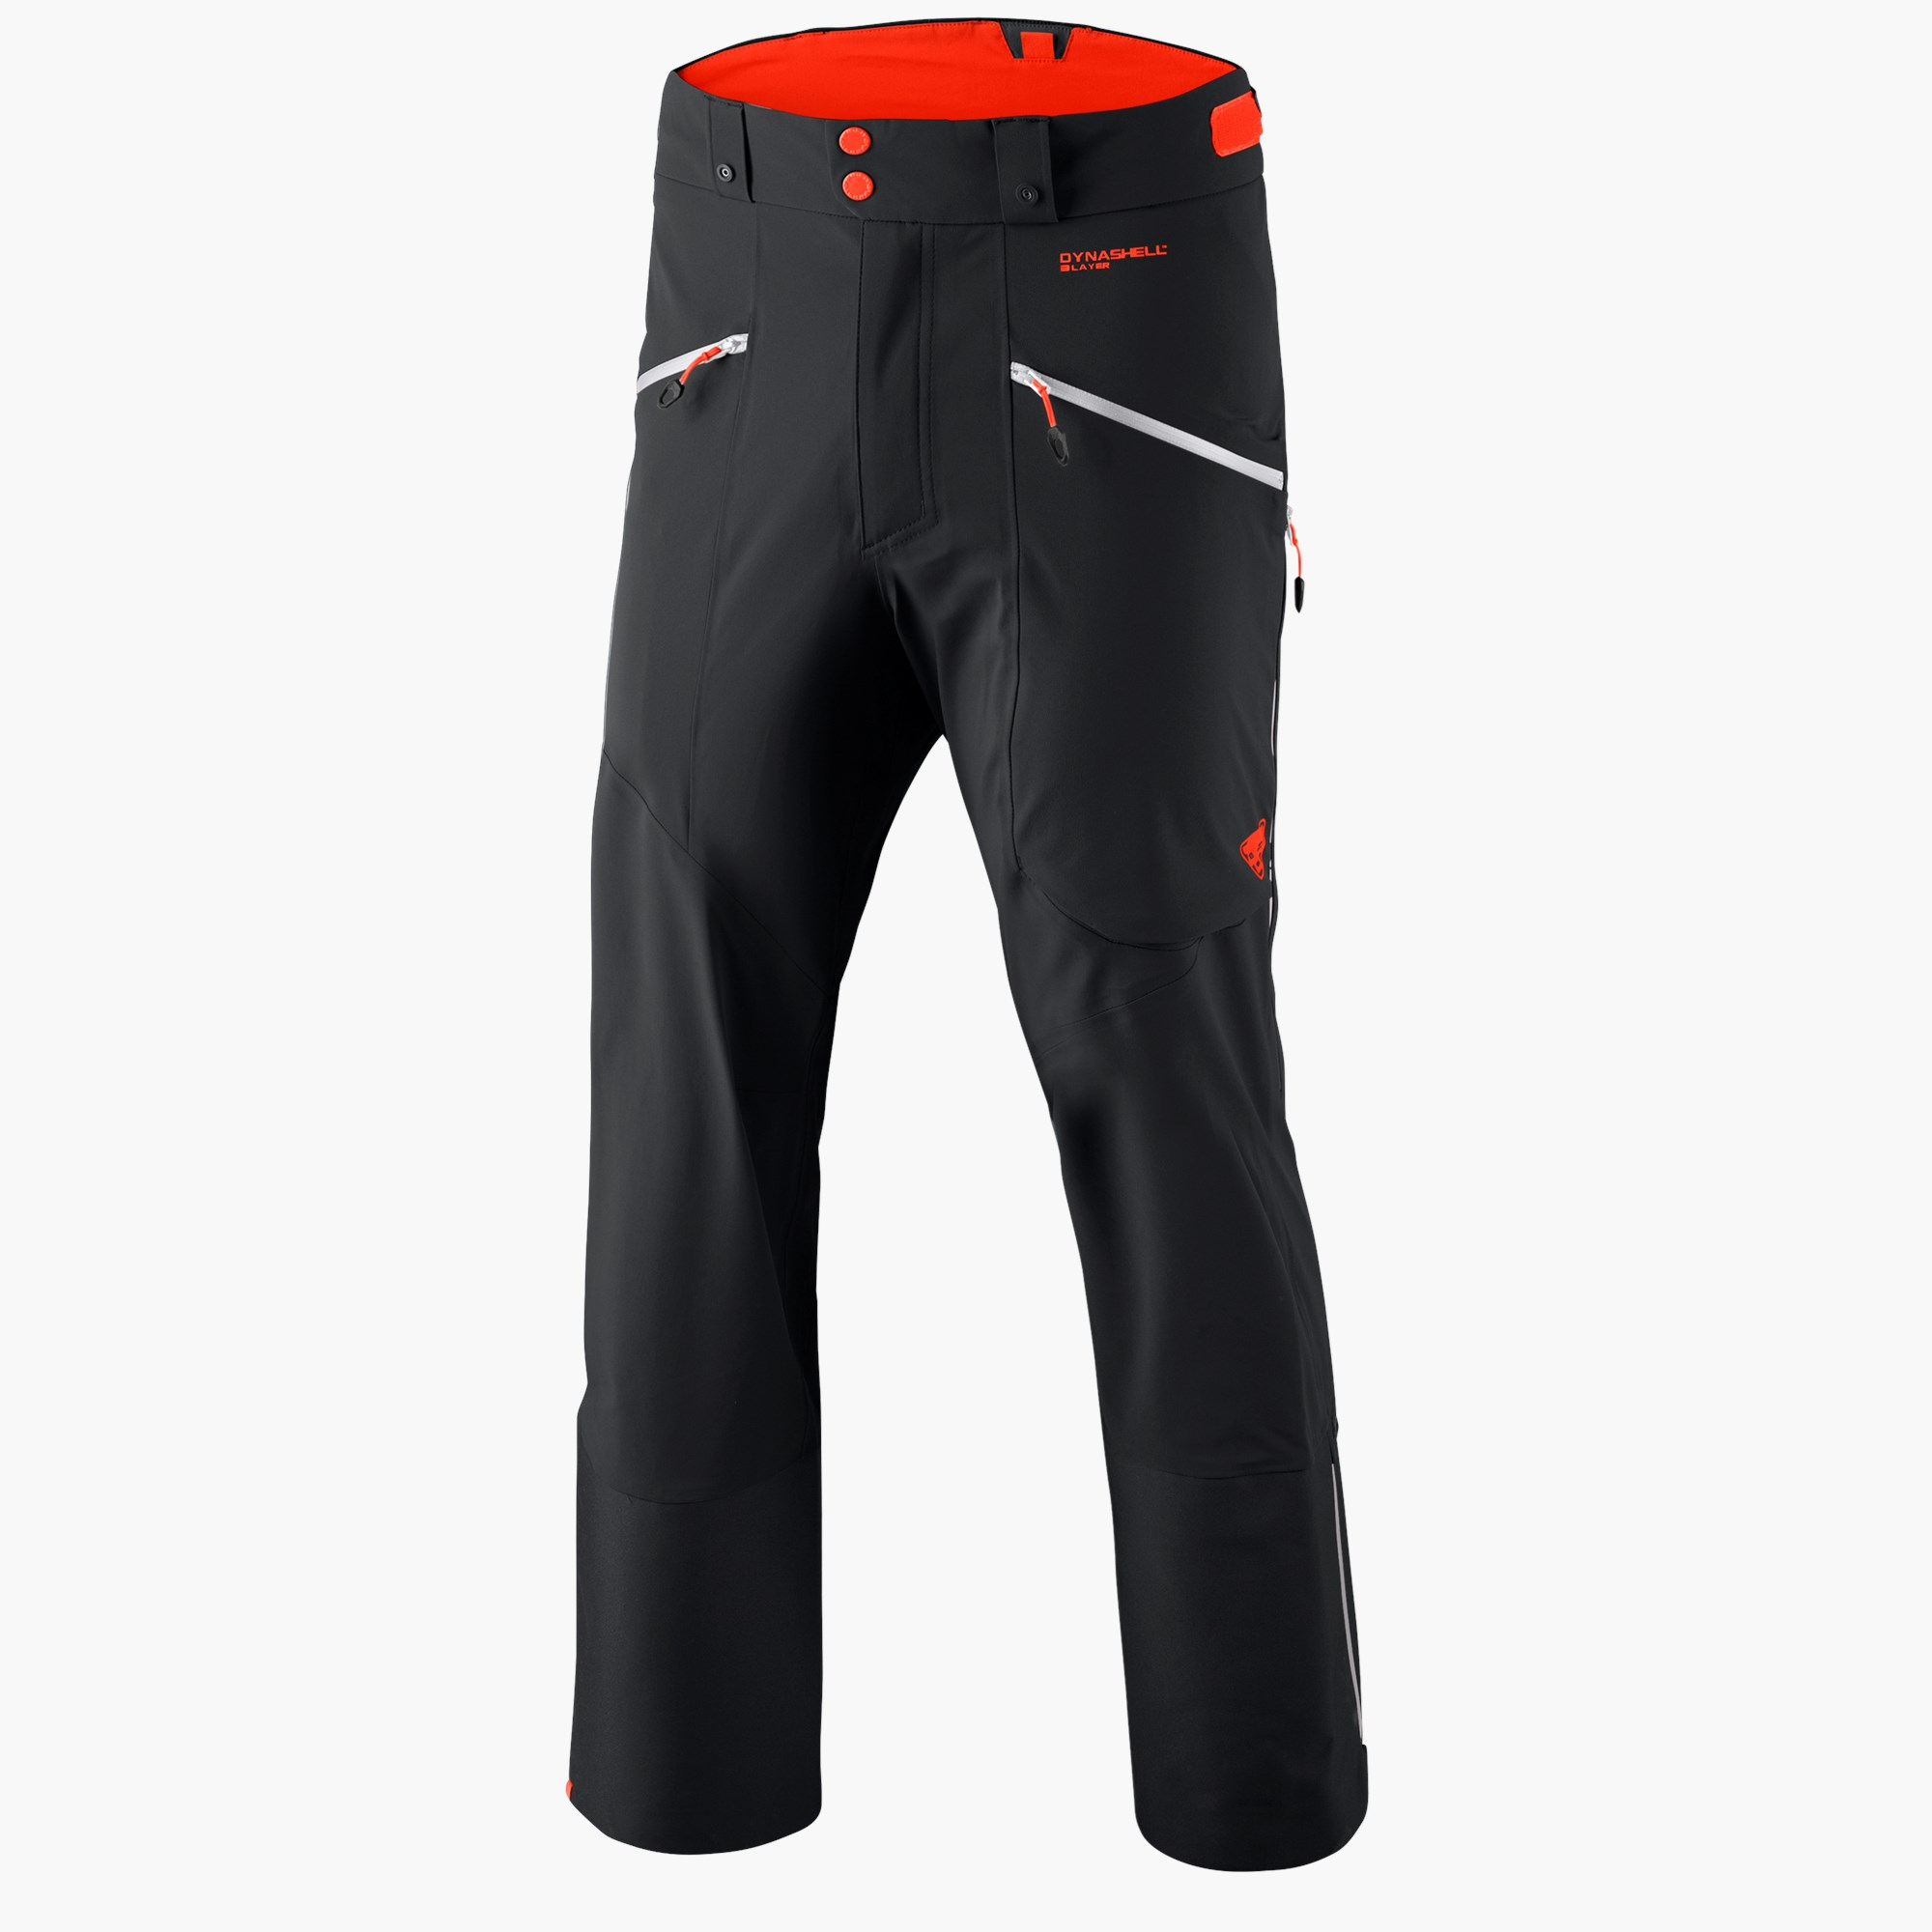 96d89e27ea3 Ski touring pants men's buy online now | Dynafit